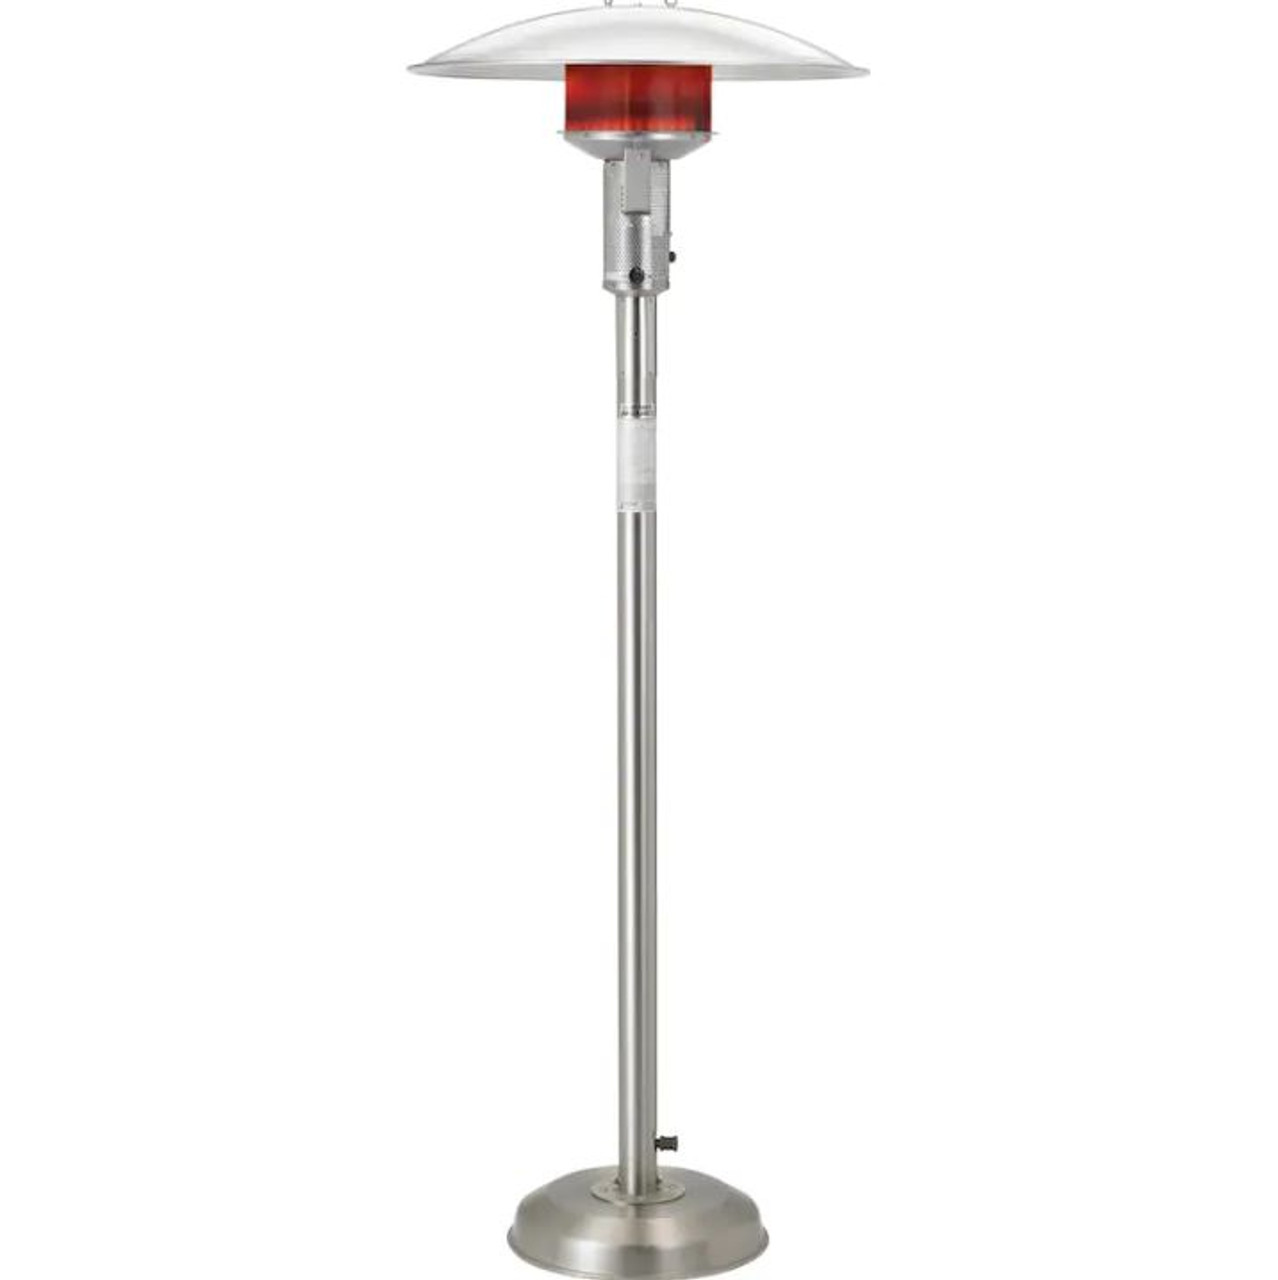 sunglo 50000 btu natural gas patio heater stainless steel a242 ss